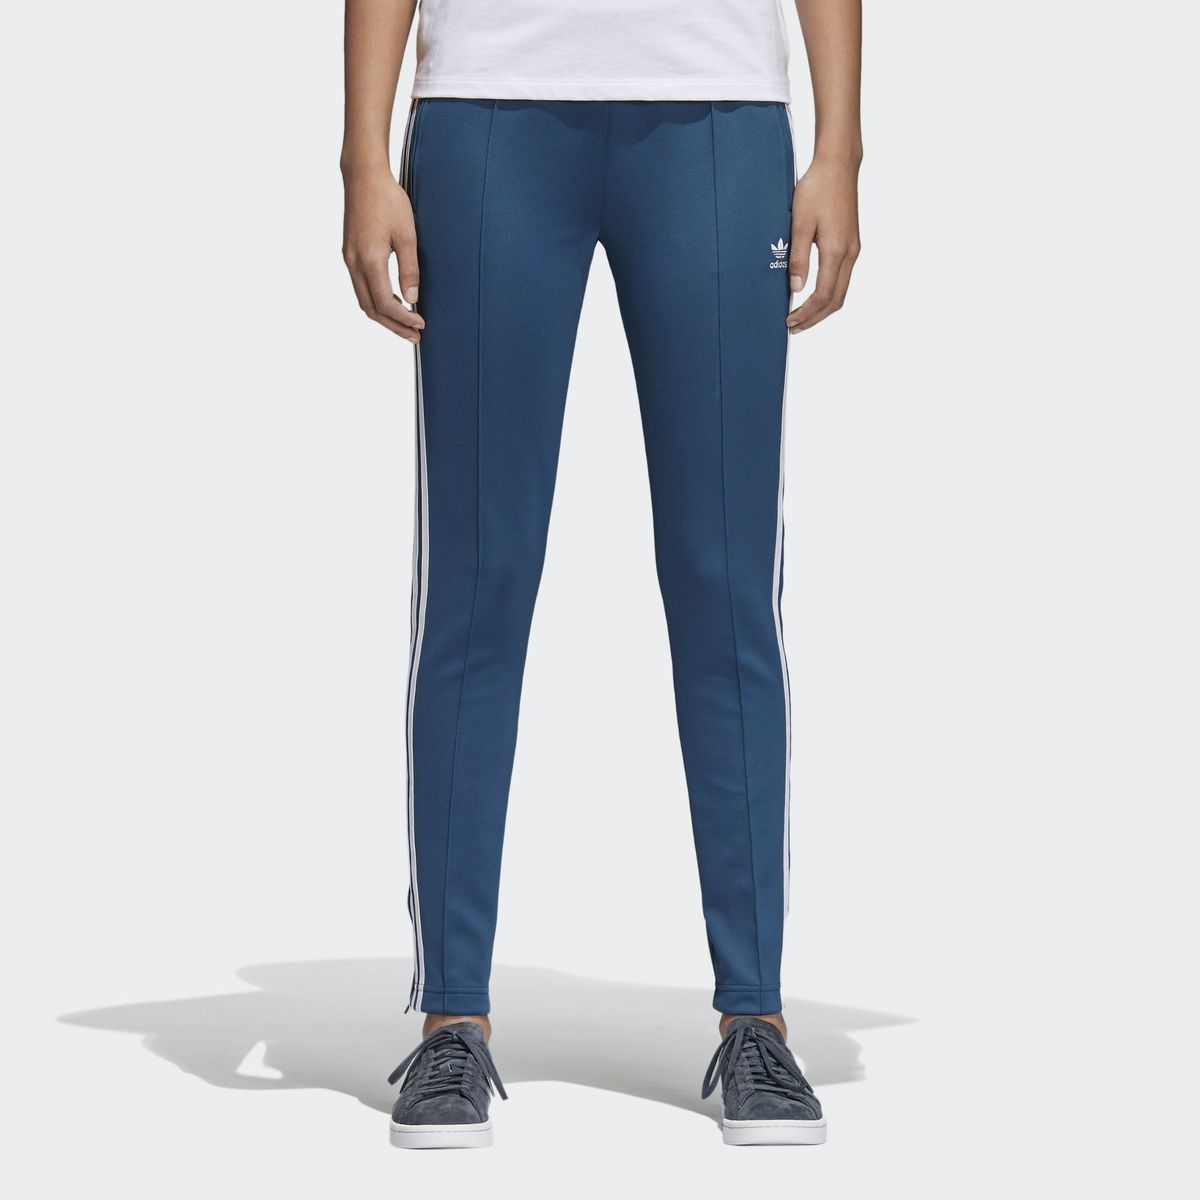 pantalon de survetement femme adidas sst